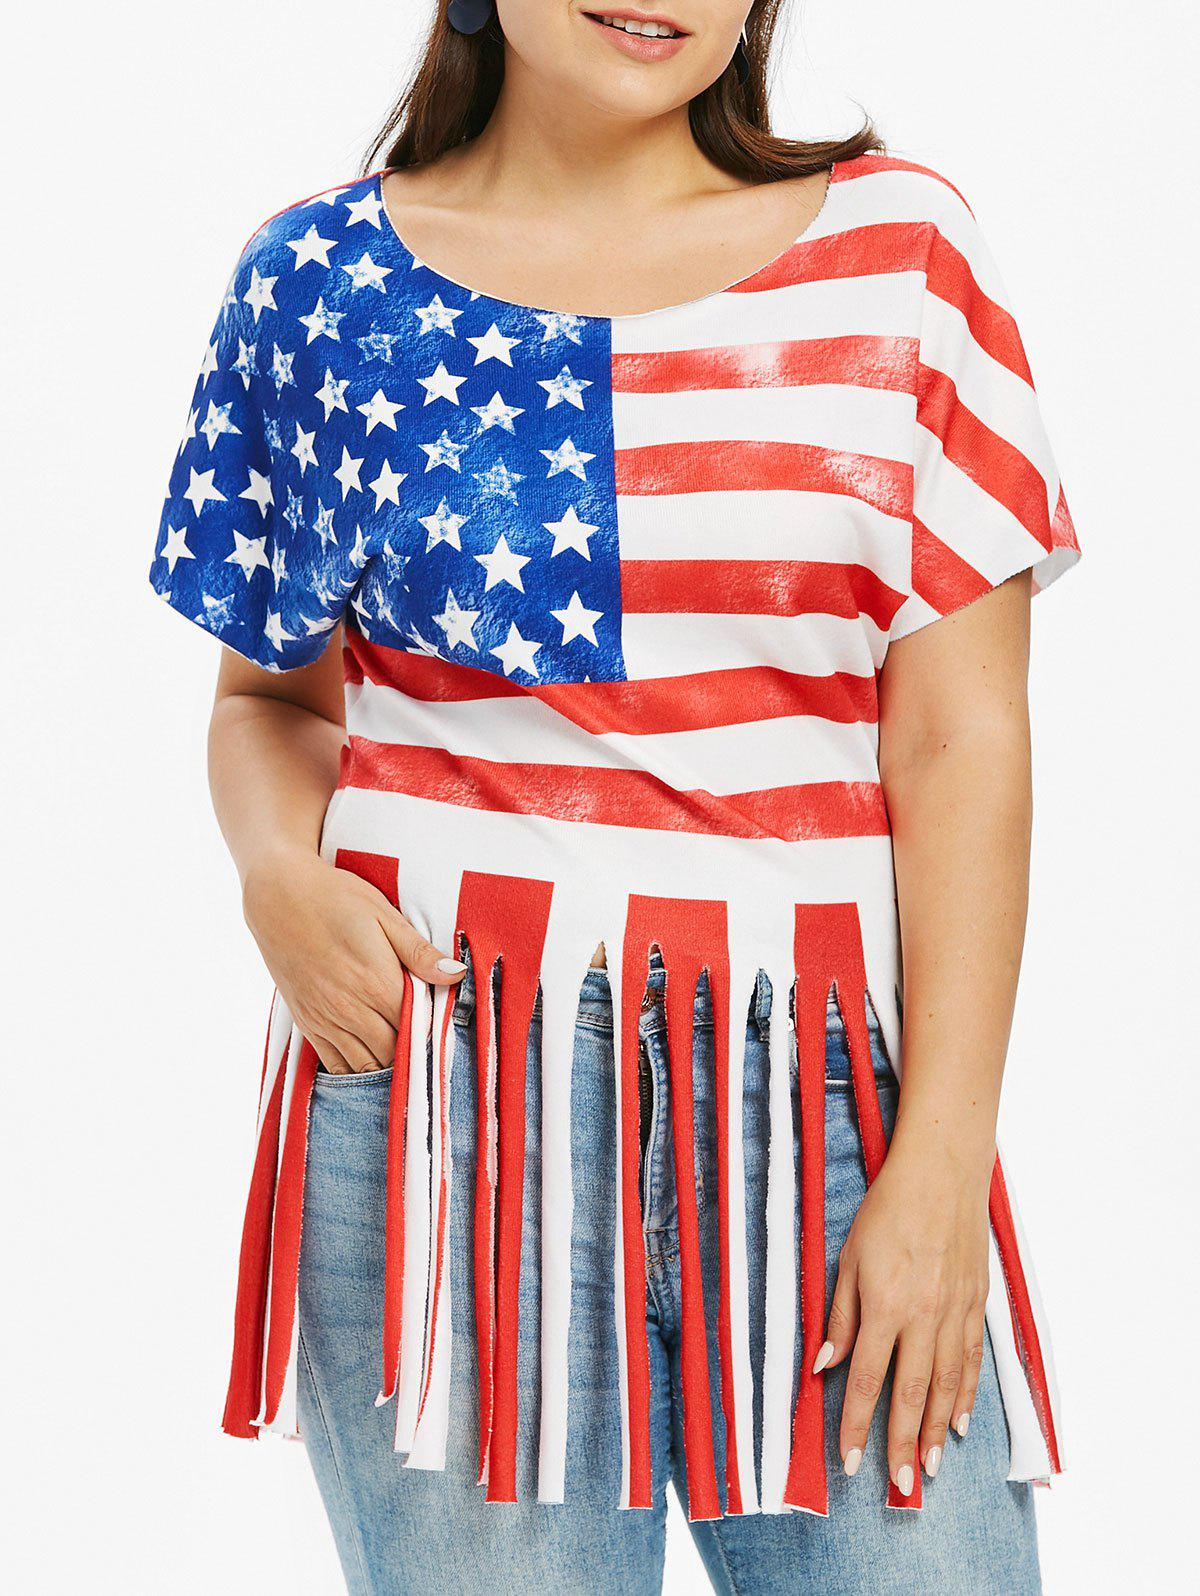 f8c105b1285 64% OFF   2019 Plus Size Fringe American Flag Patriotic T-shirt ...